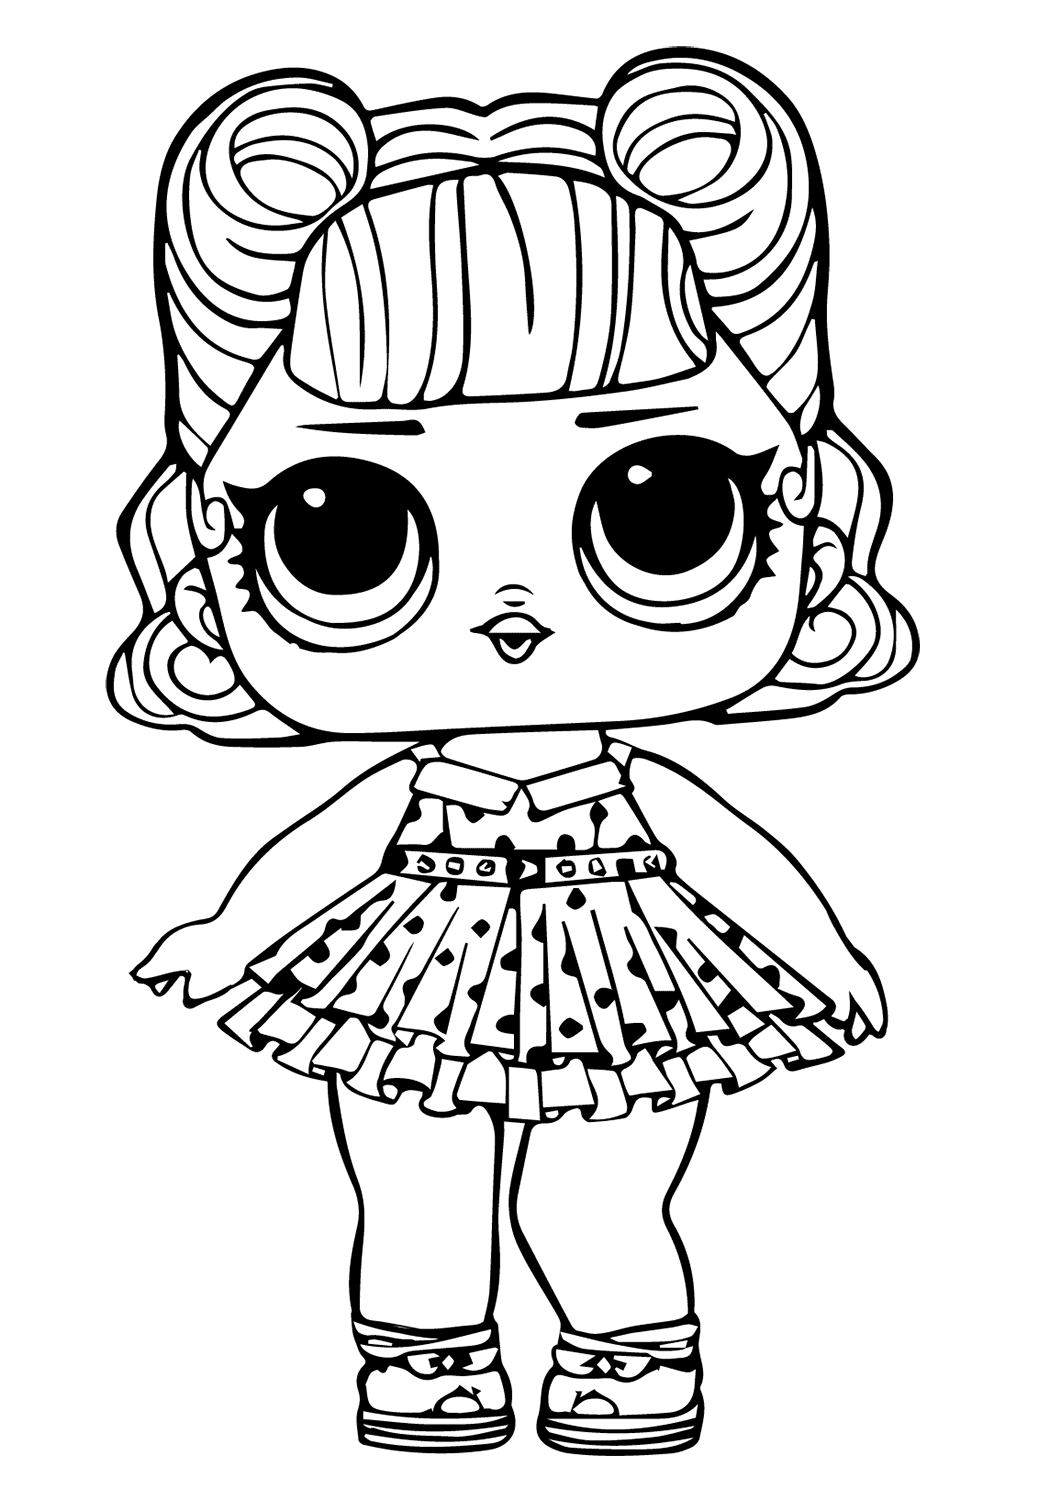 dolls colouring pages rag doll coloring page at getcoloringscom free pages dolls colouring